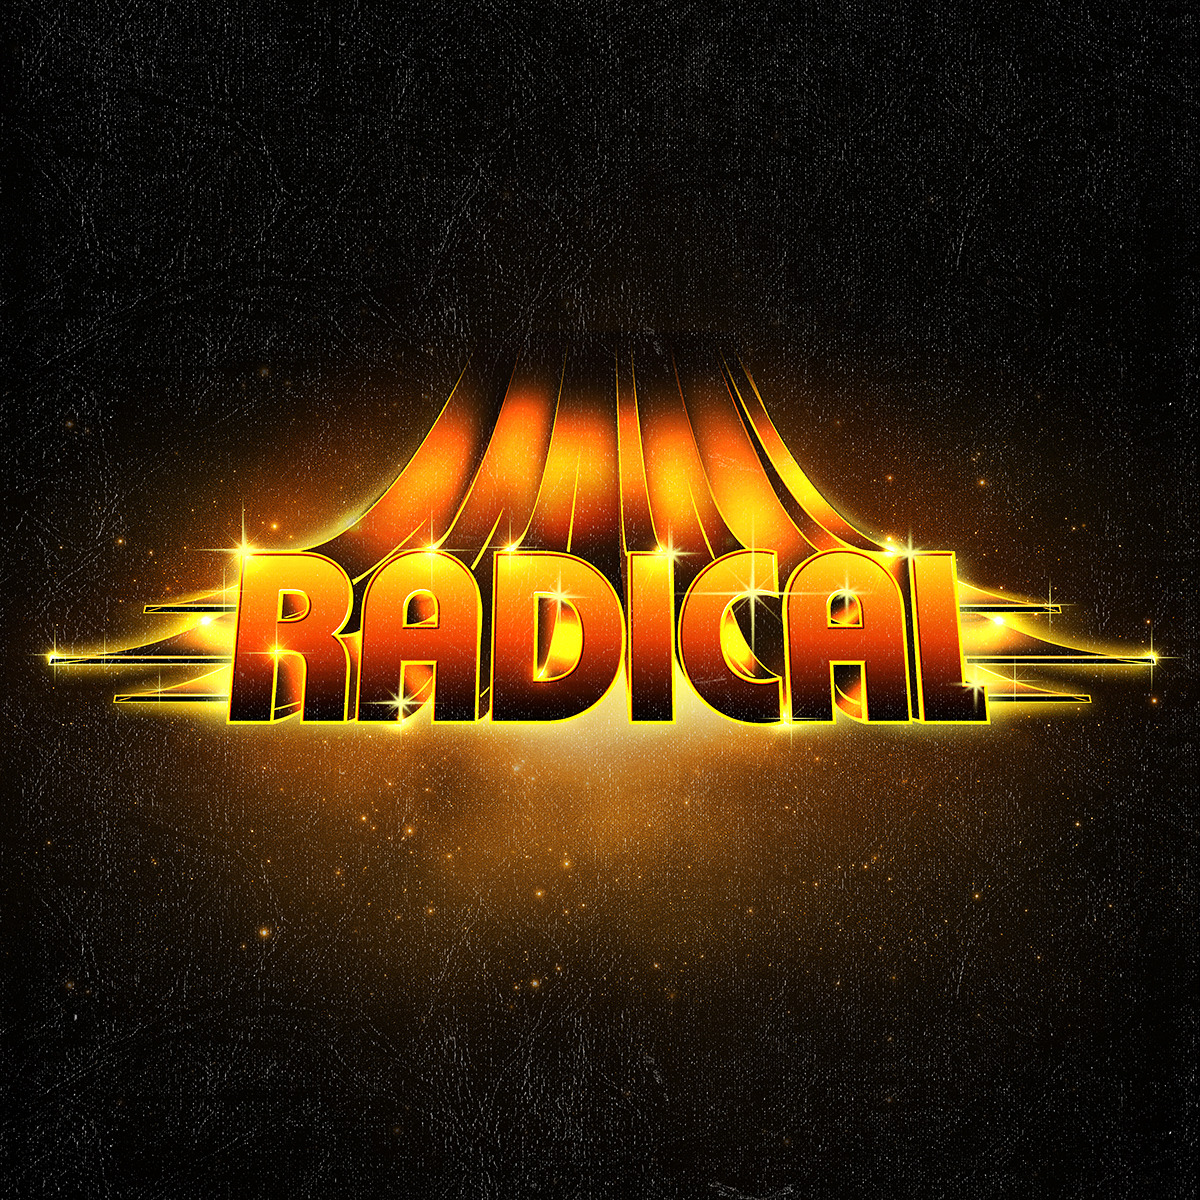 Radical - Retro Typographic experiment. The type of sticker you would put on your school books back in the 1980s.